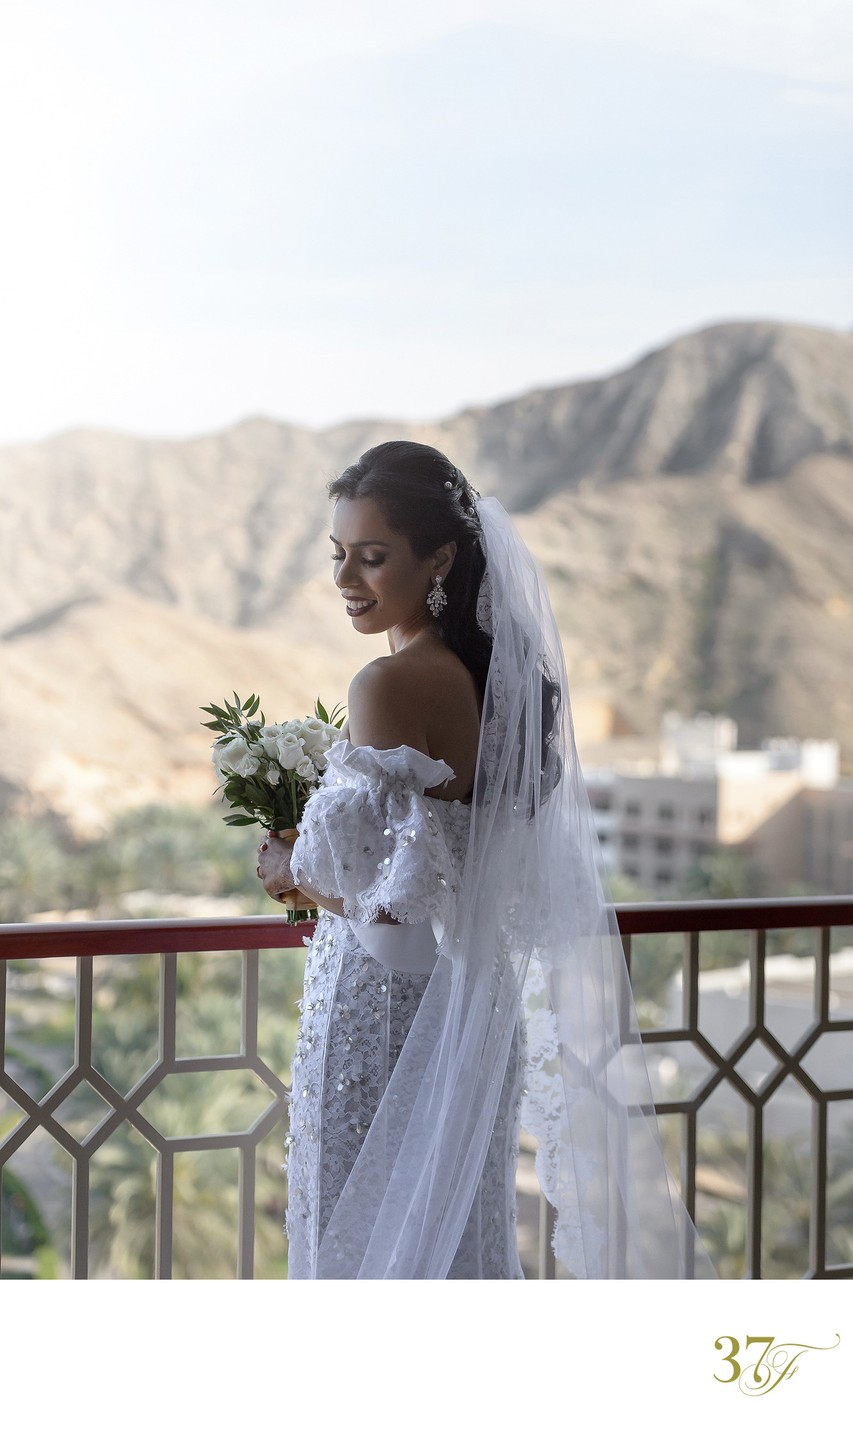 The Stunning Oman Wedding